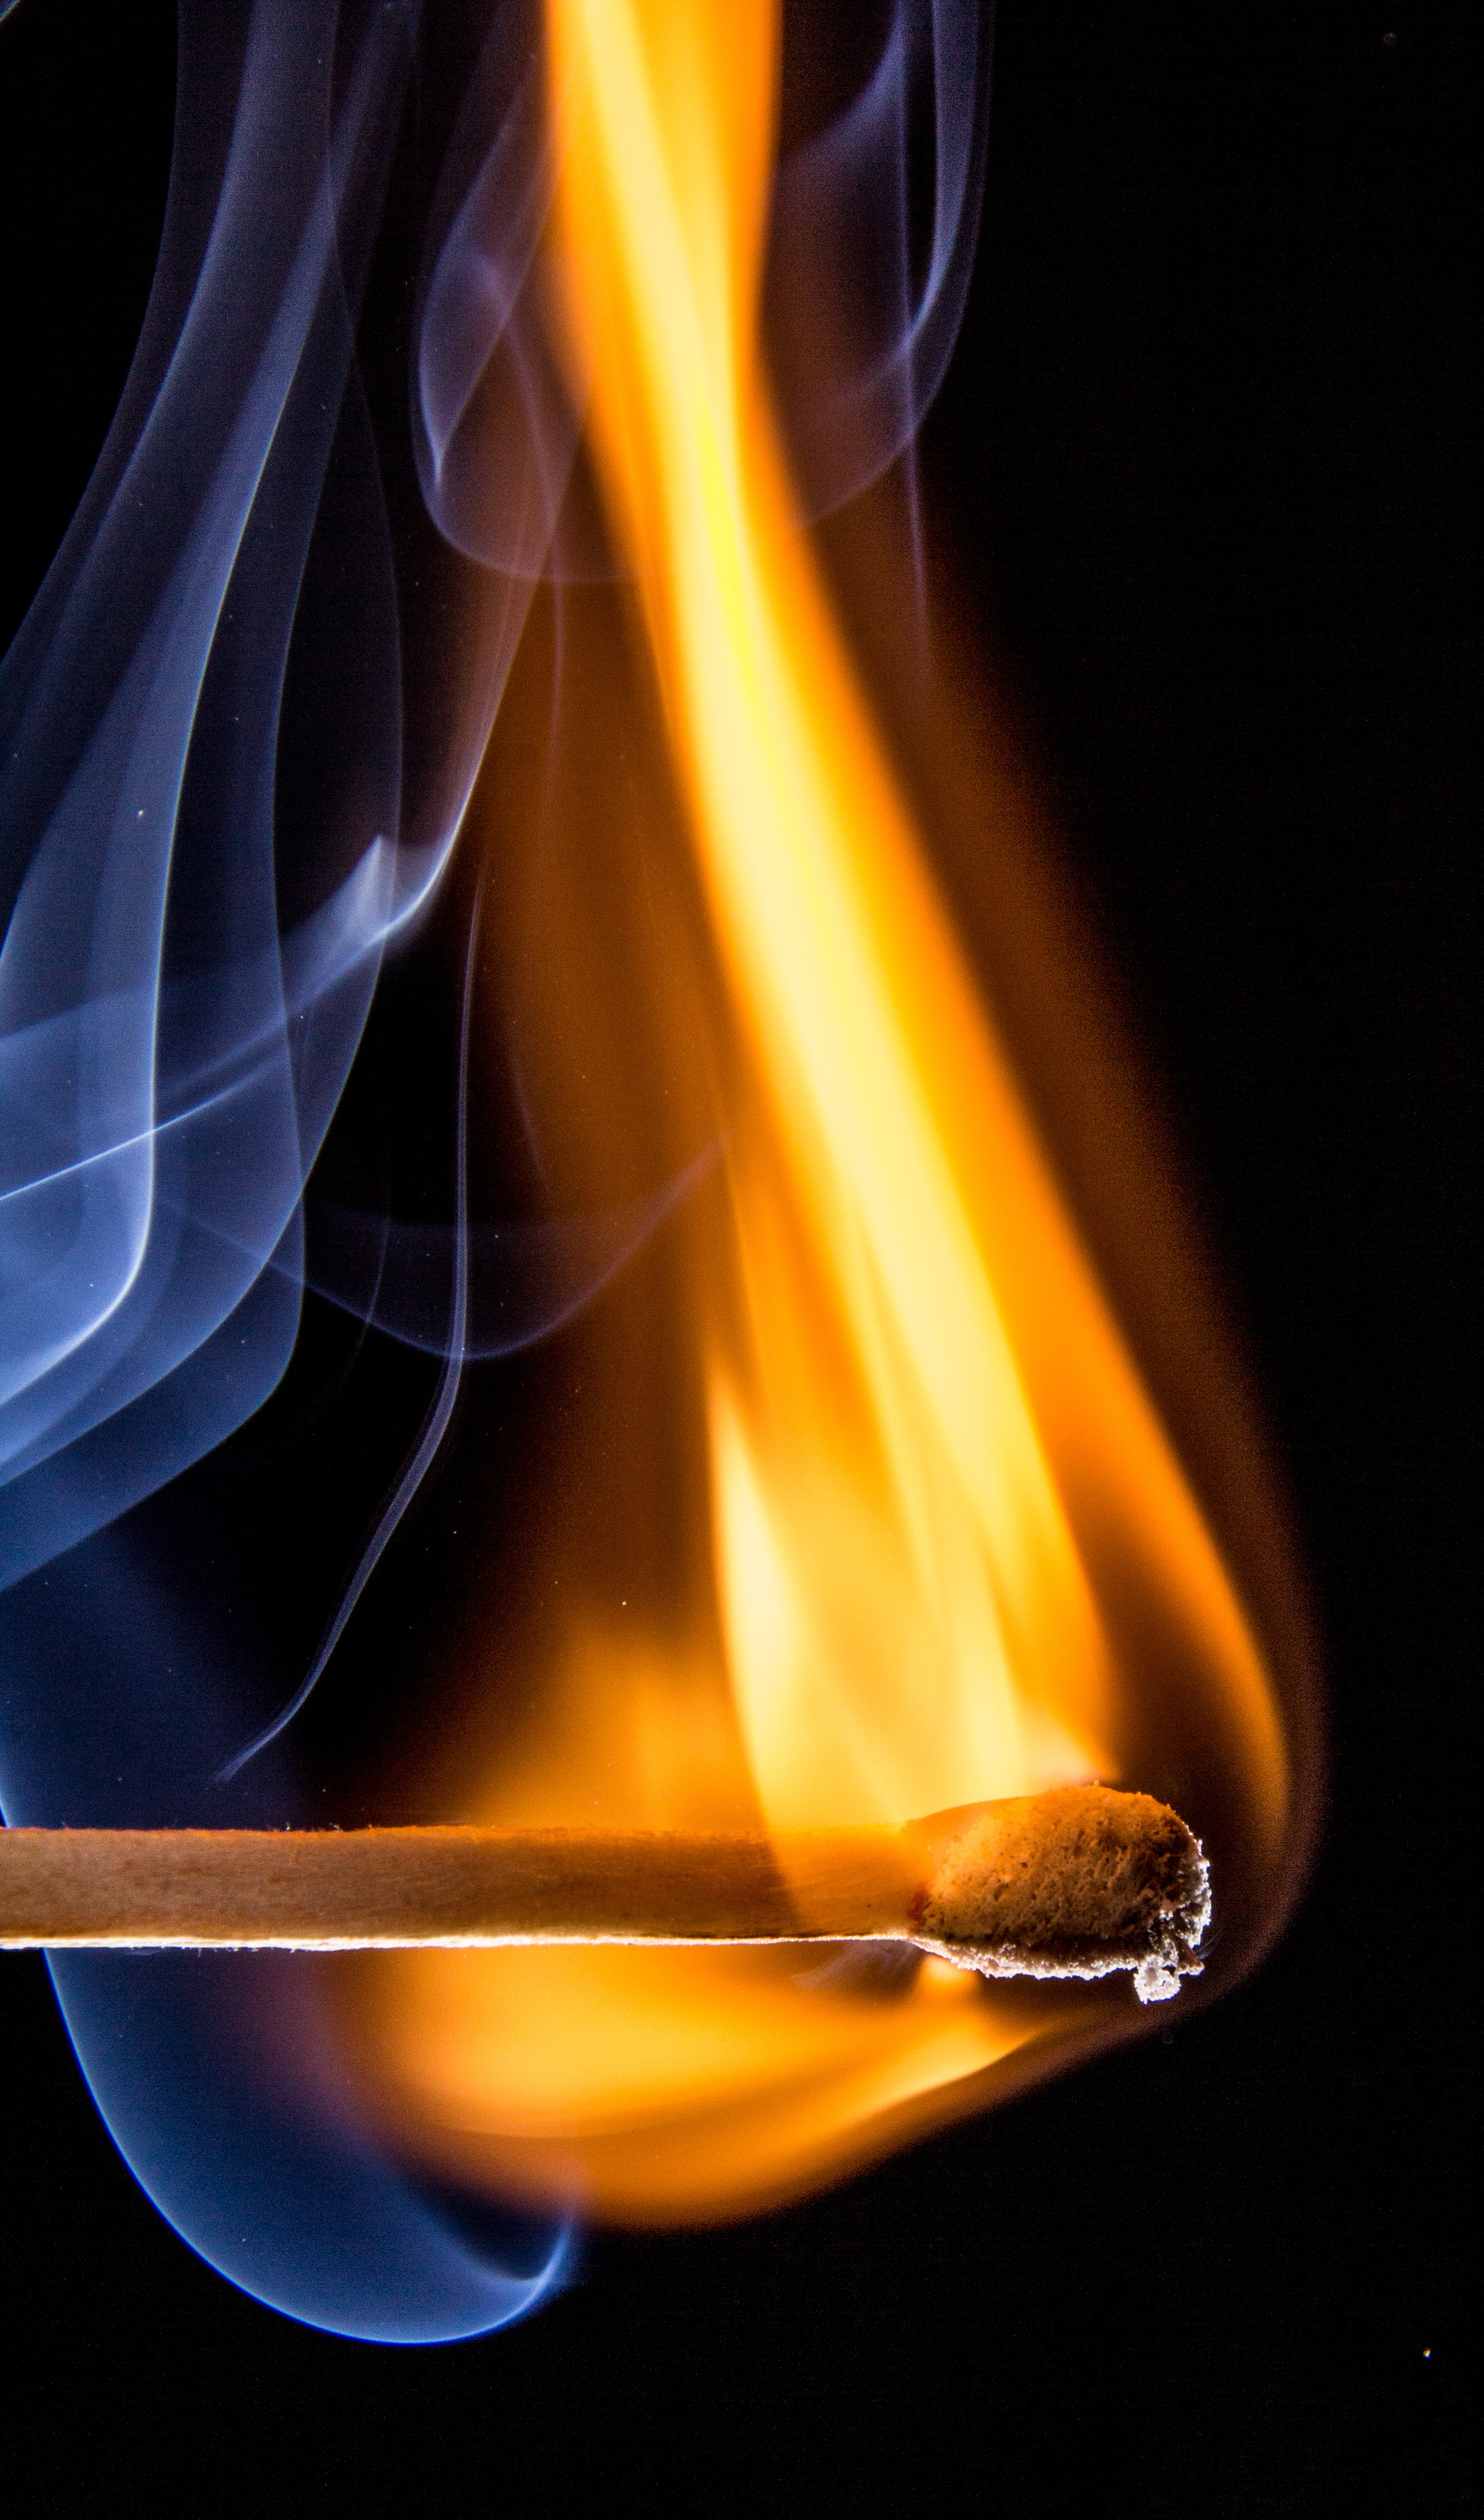 match stick give orange fire with a white smoe free stock photo